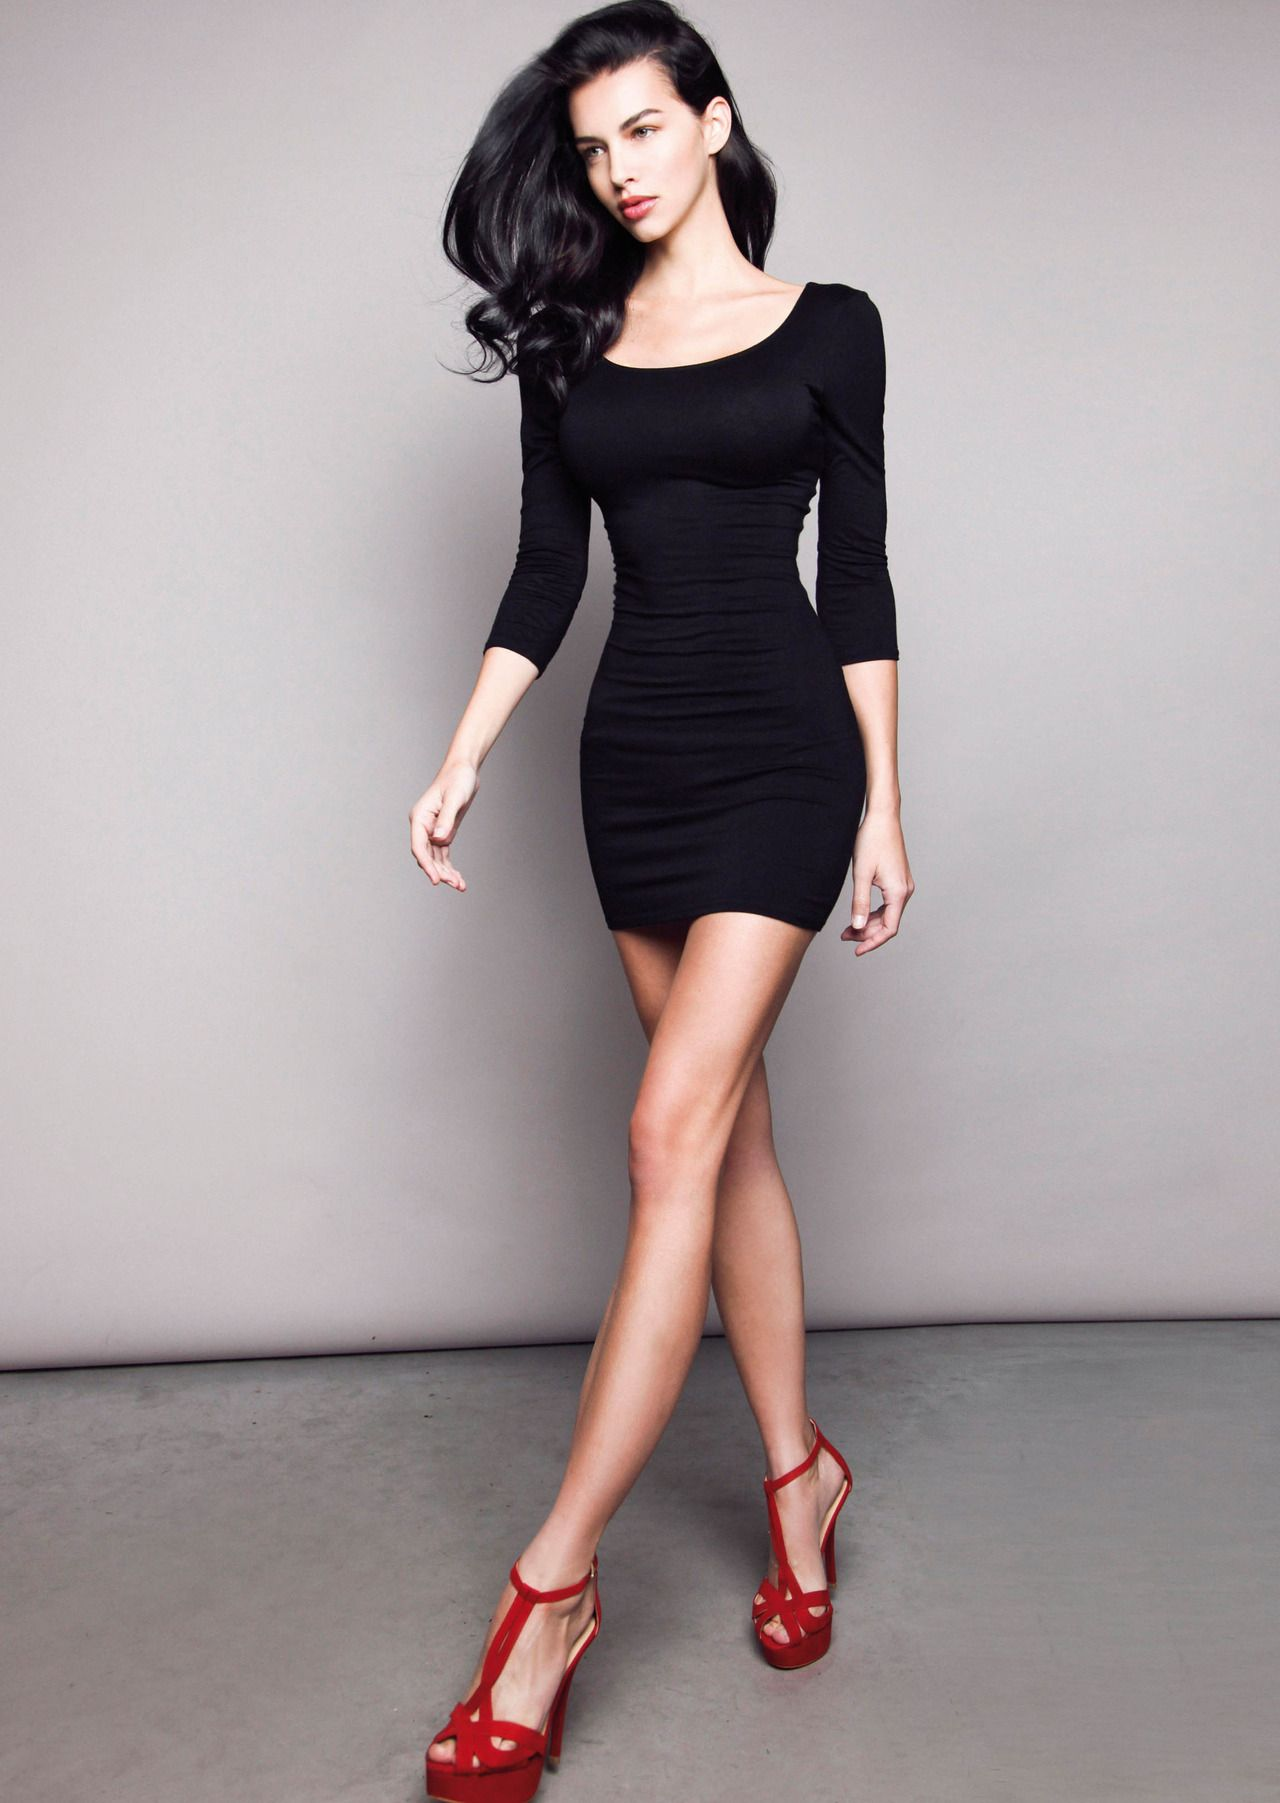 Linxspiration perfect pinterest dresses fashion and outfits